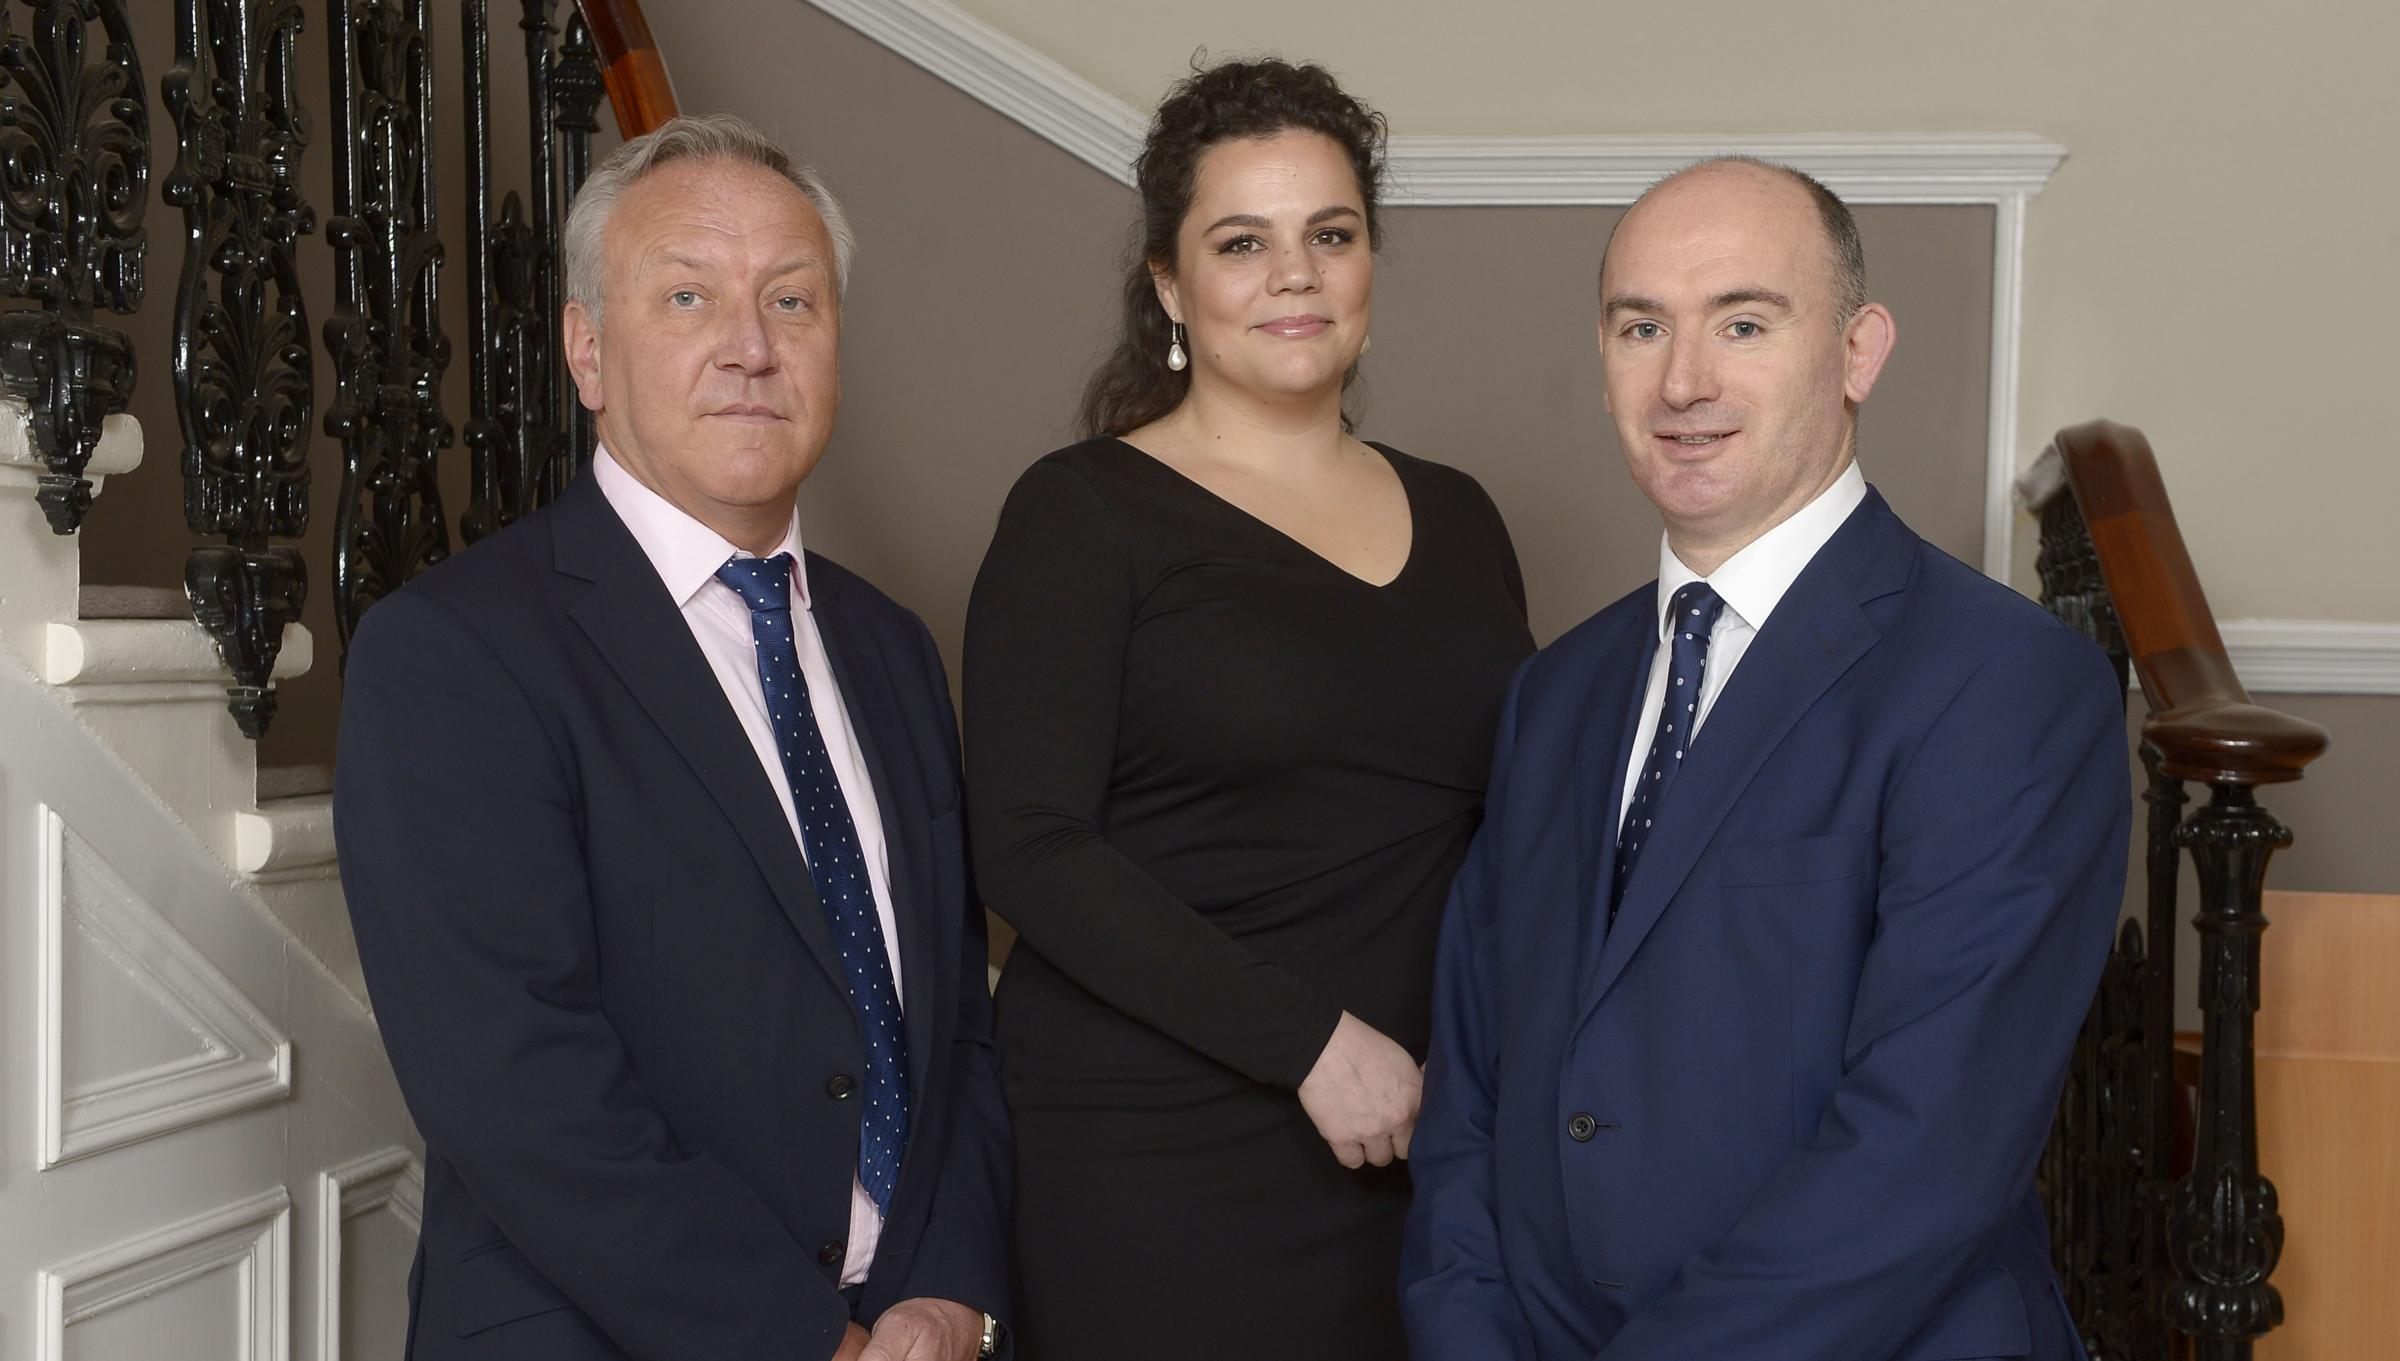 From left: Craig Jamieson, regional director at Barclays wealth management, Alexandra Mancini and John Godfrey